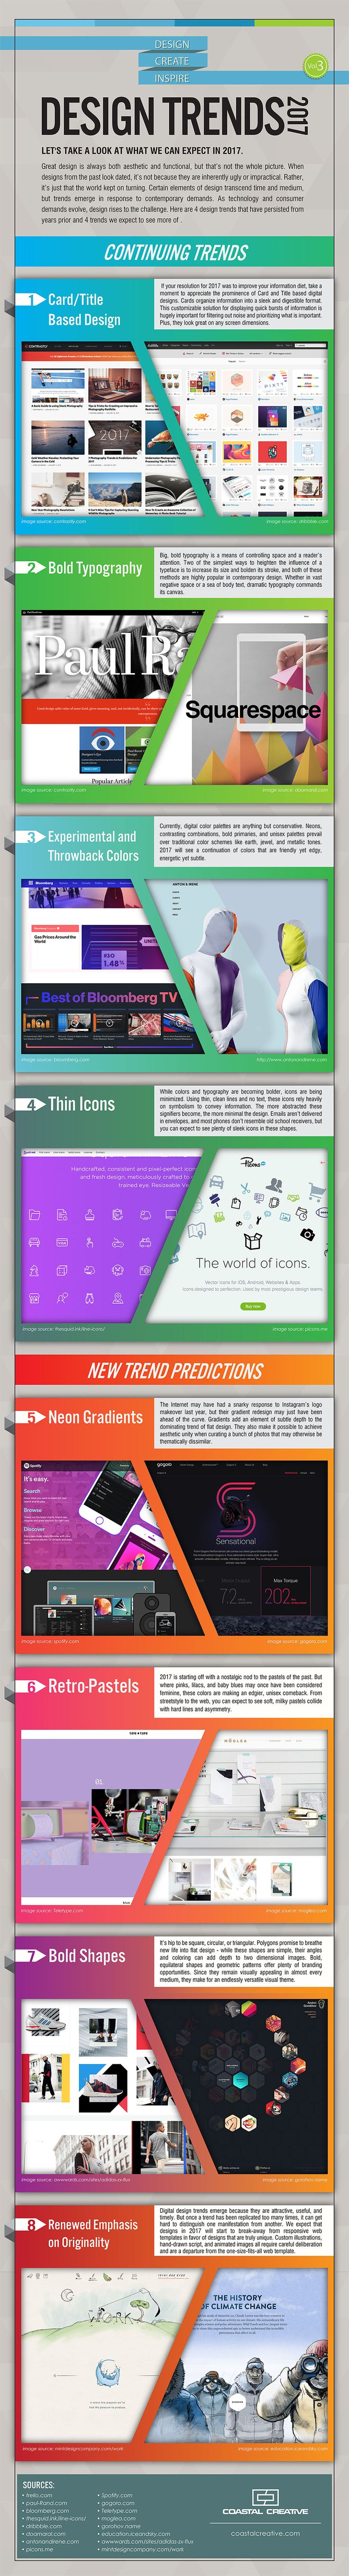 Design Trends 2017 Infographic http://www.99wtf.net/men/mens-fasion/latest-mens-fashion-trends-2016/